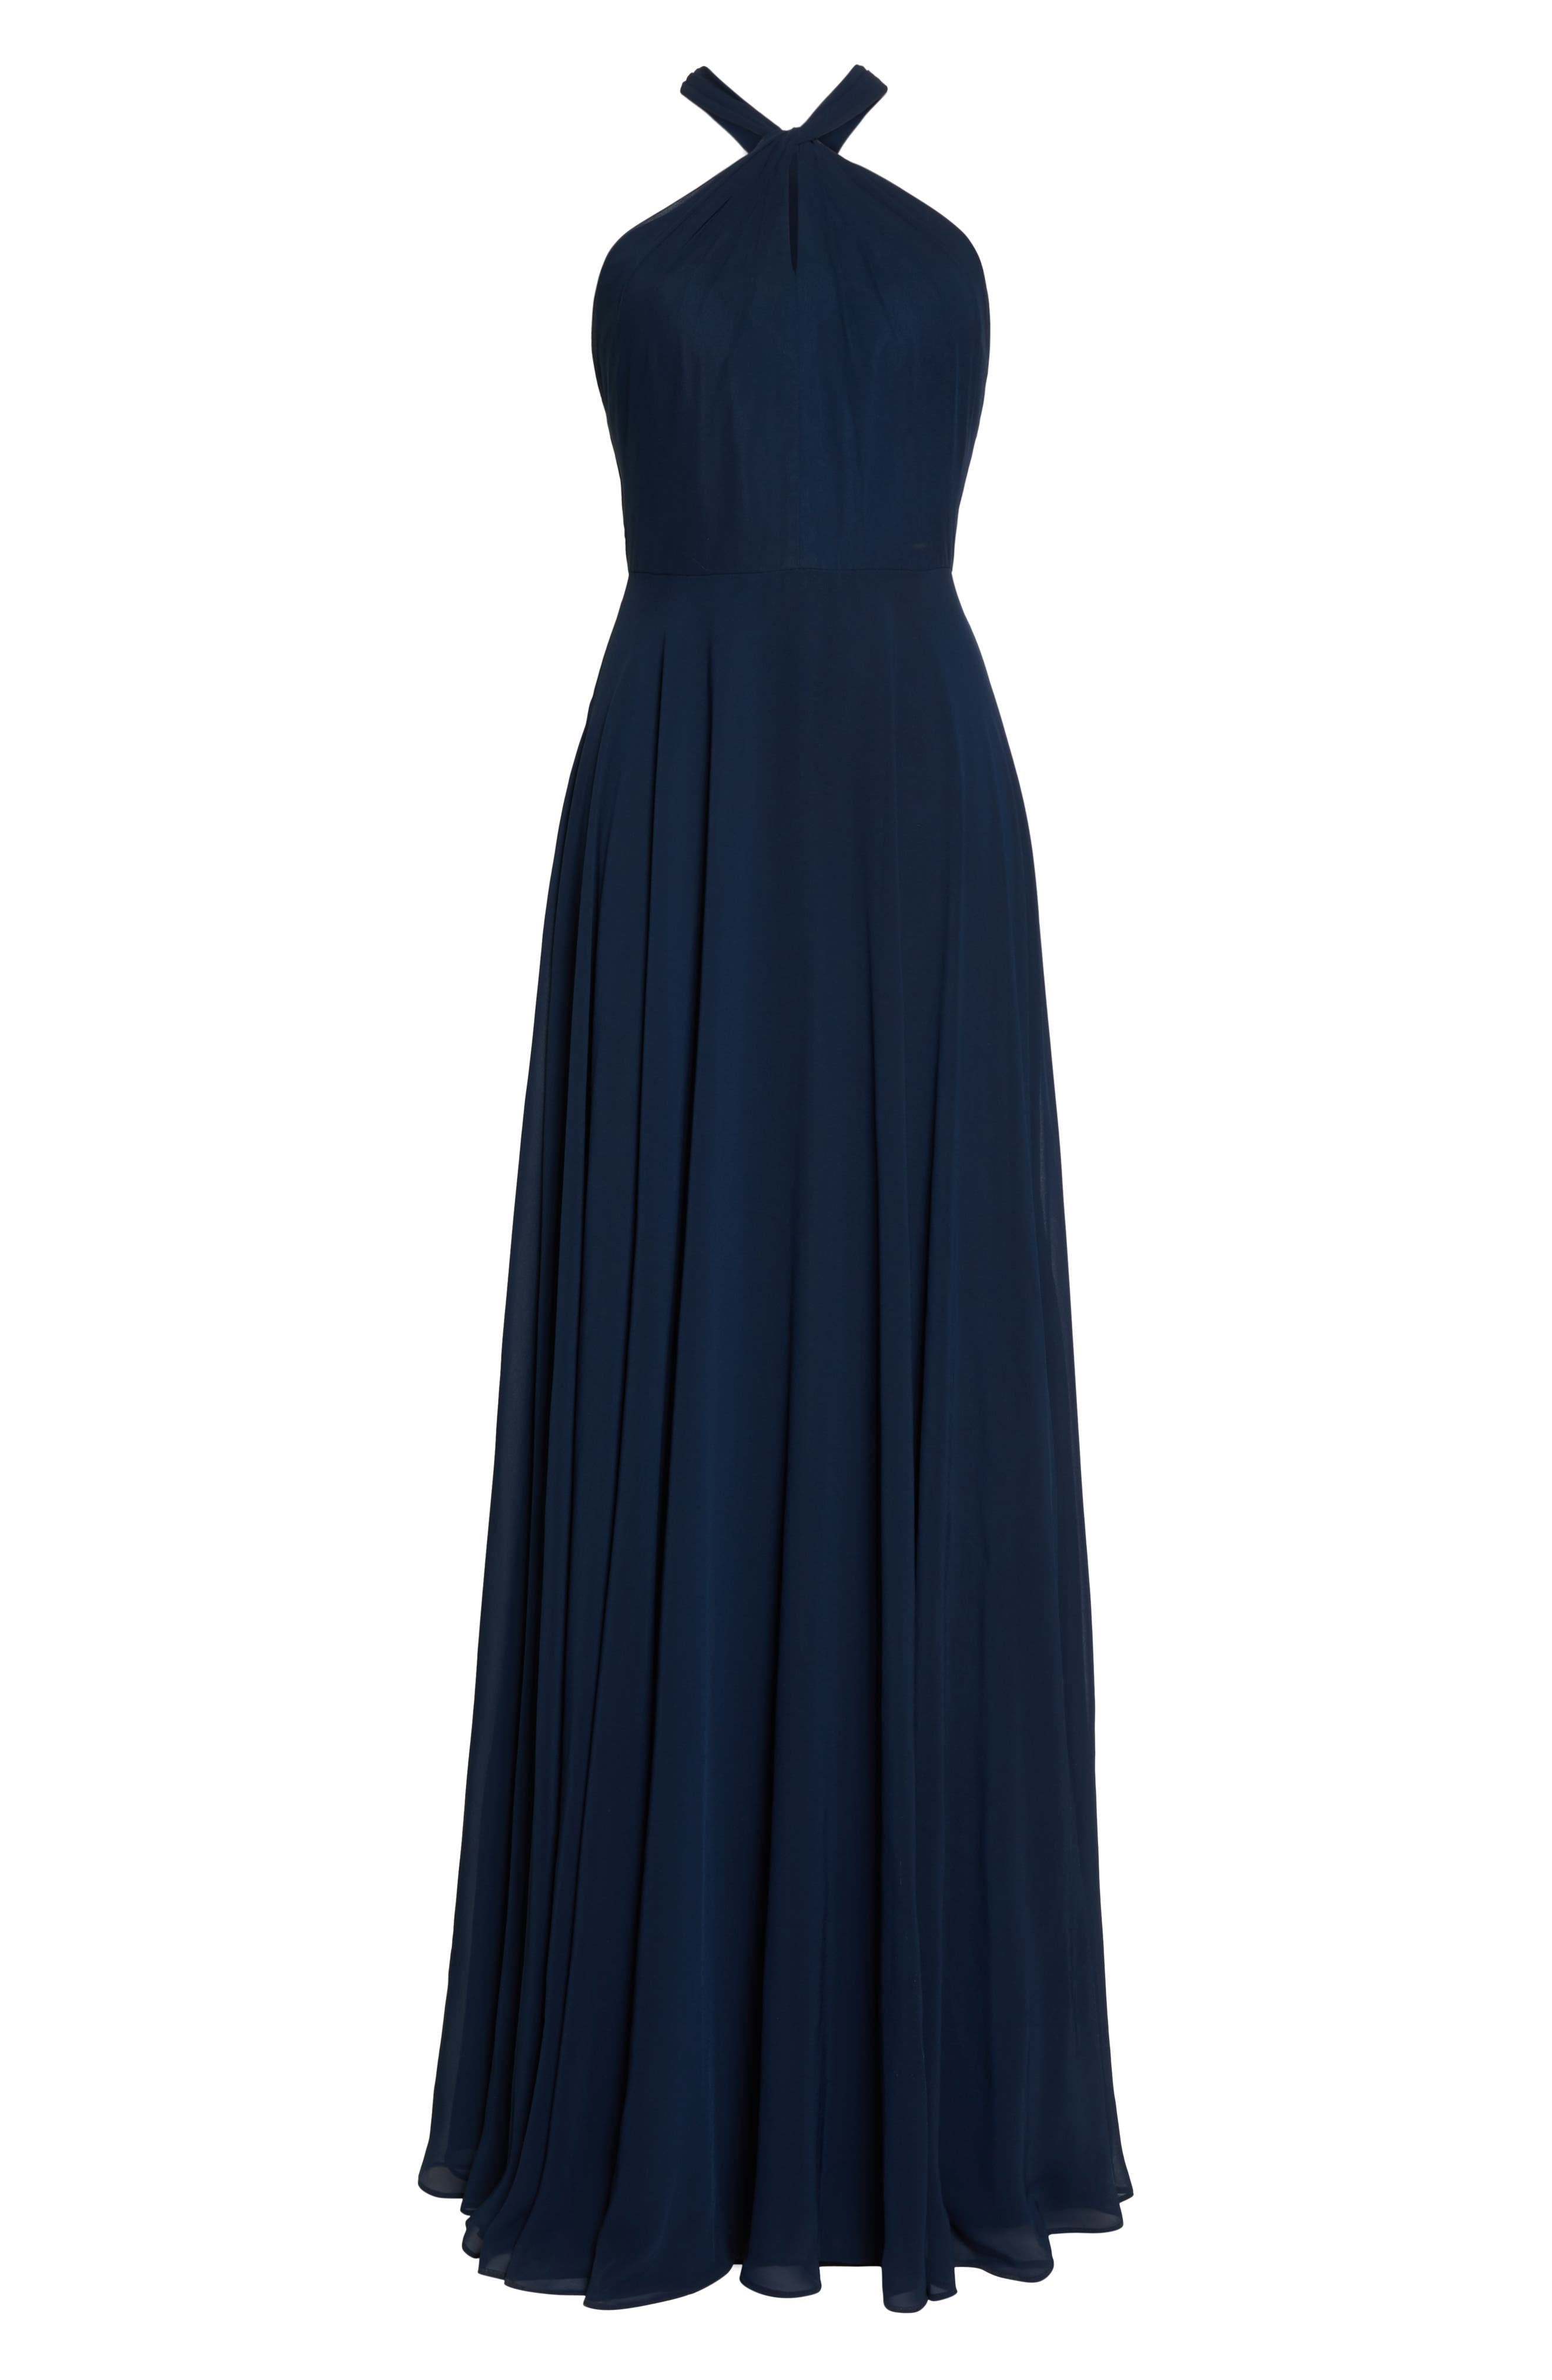 JENNY YOO, Halle Halter Evening Dress, Alternate thumbnail 7, color, NAVY